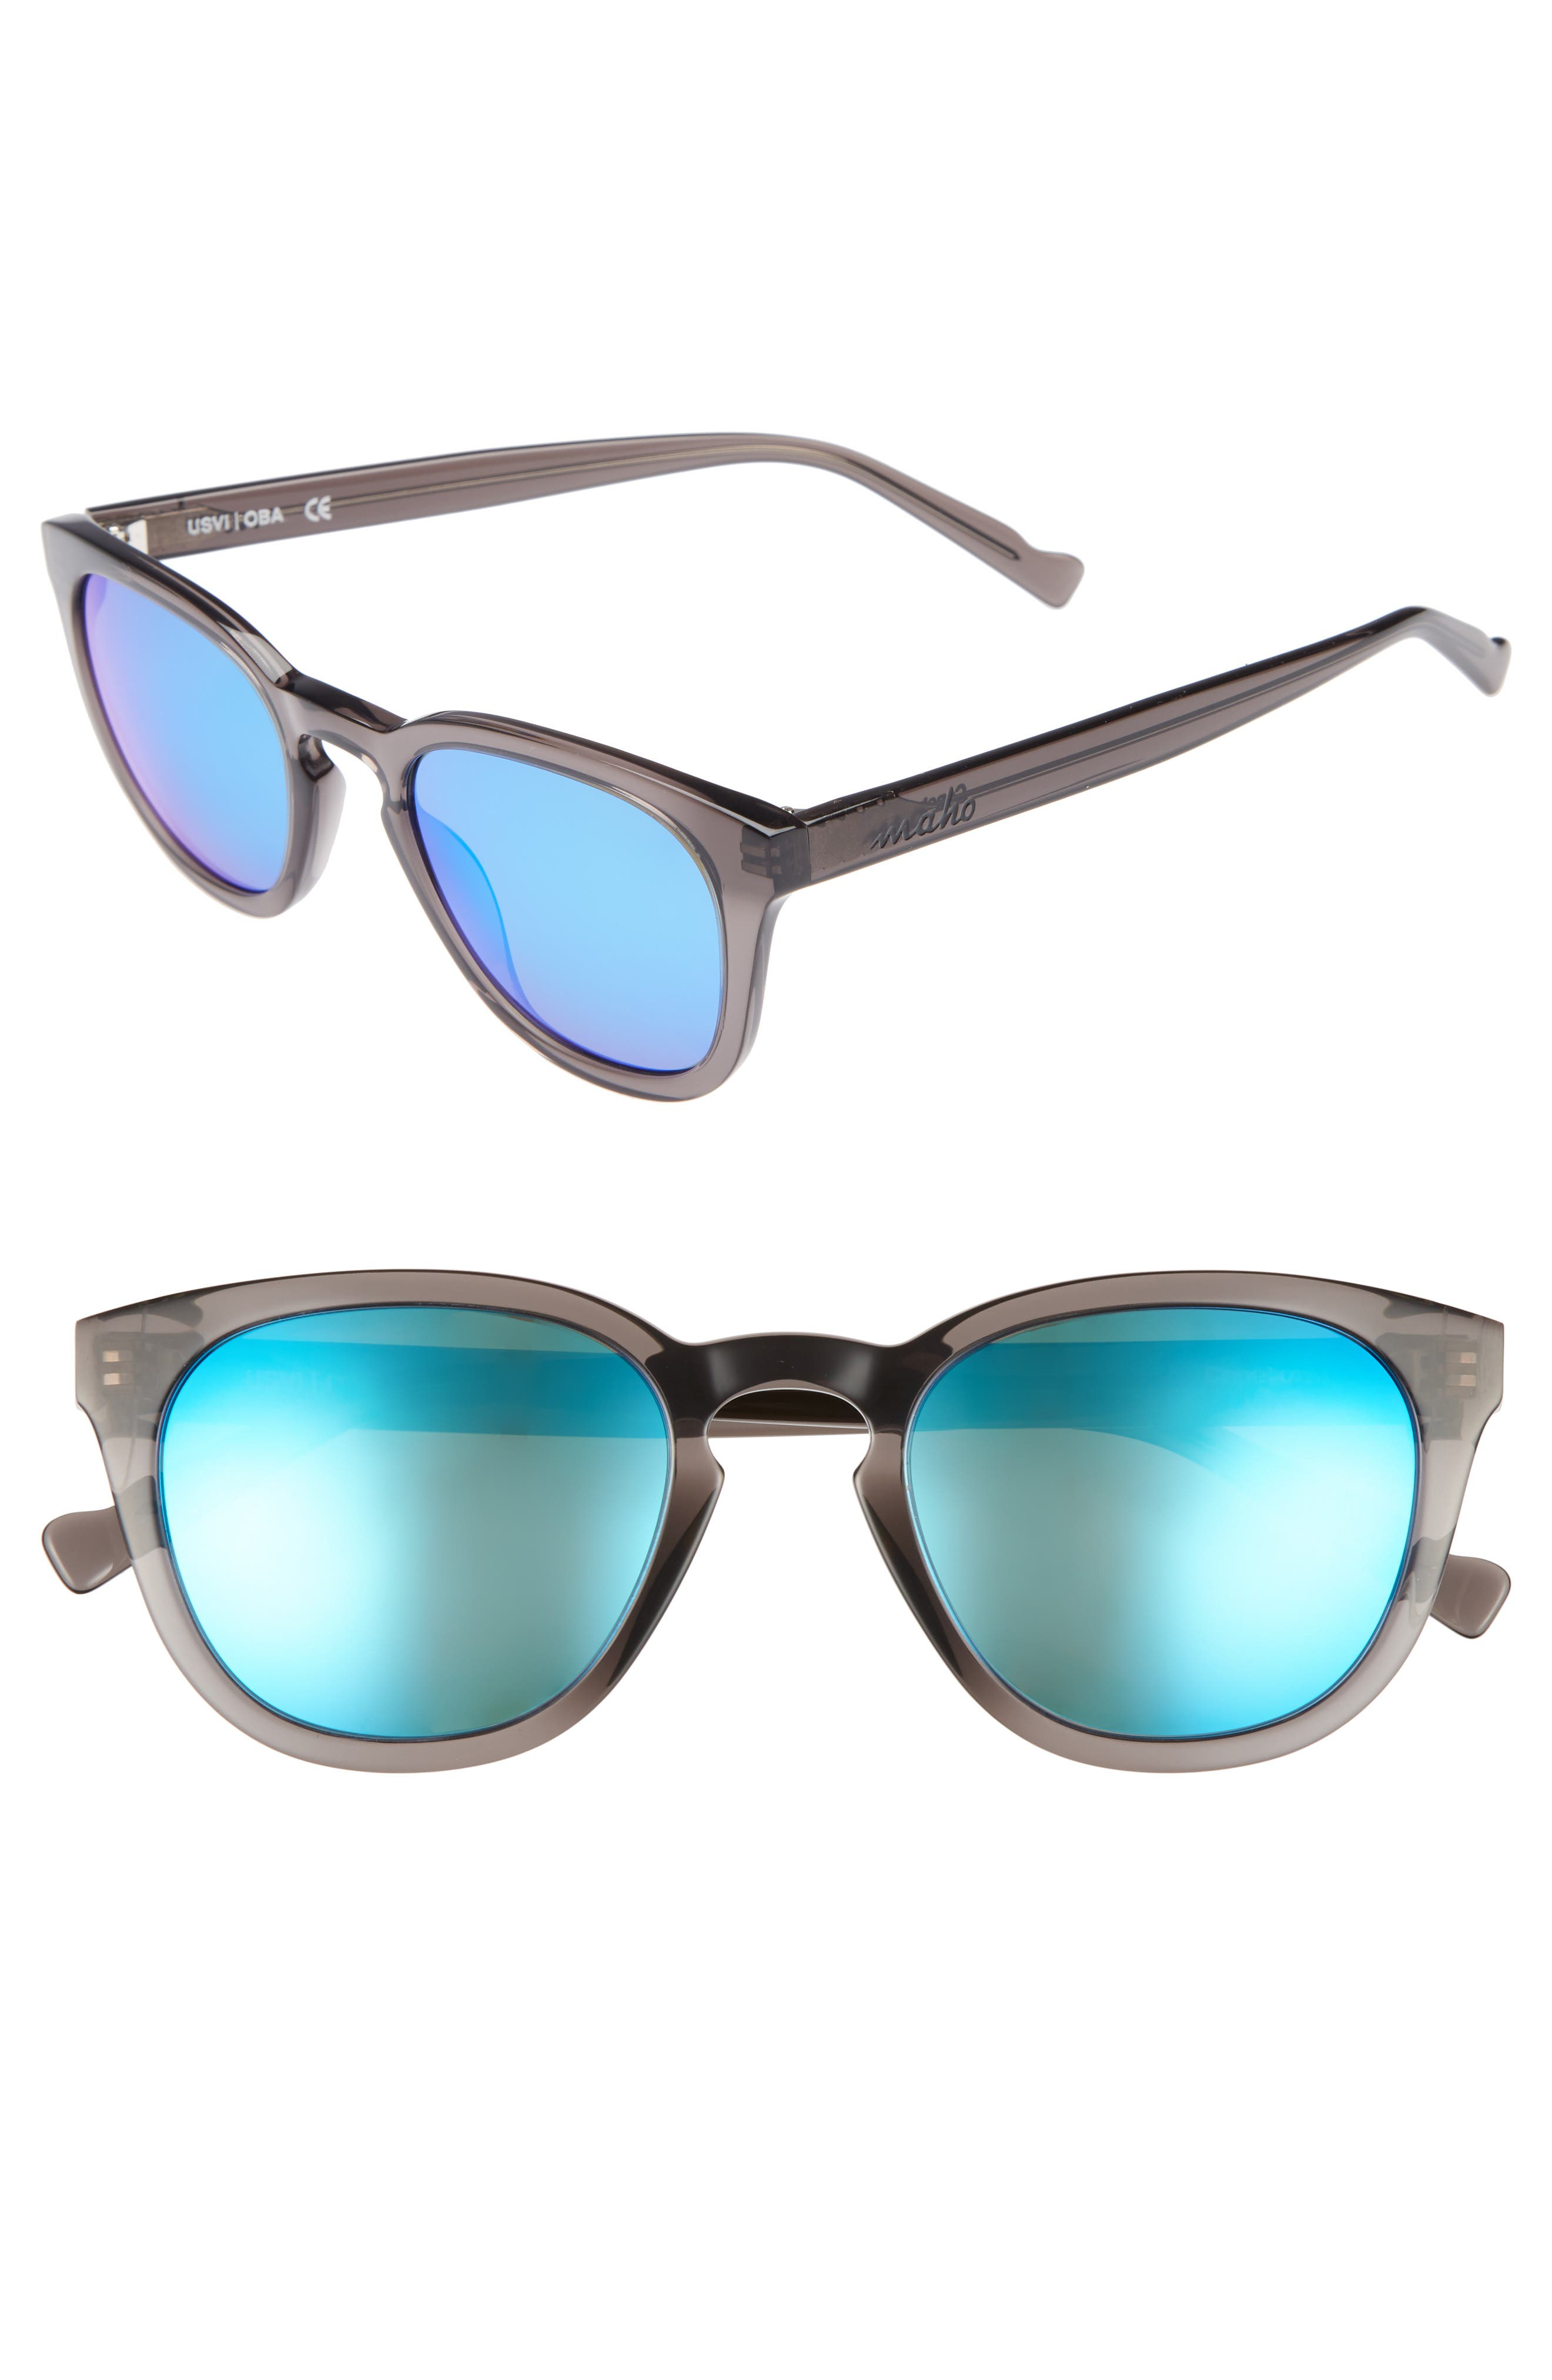 Capetown 50mm Polarized Round Sunglasses,                         Main,                         color, SLATE